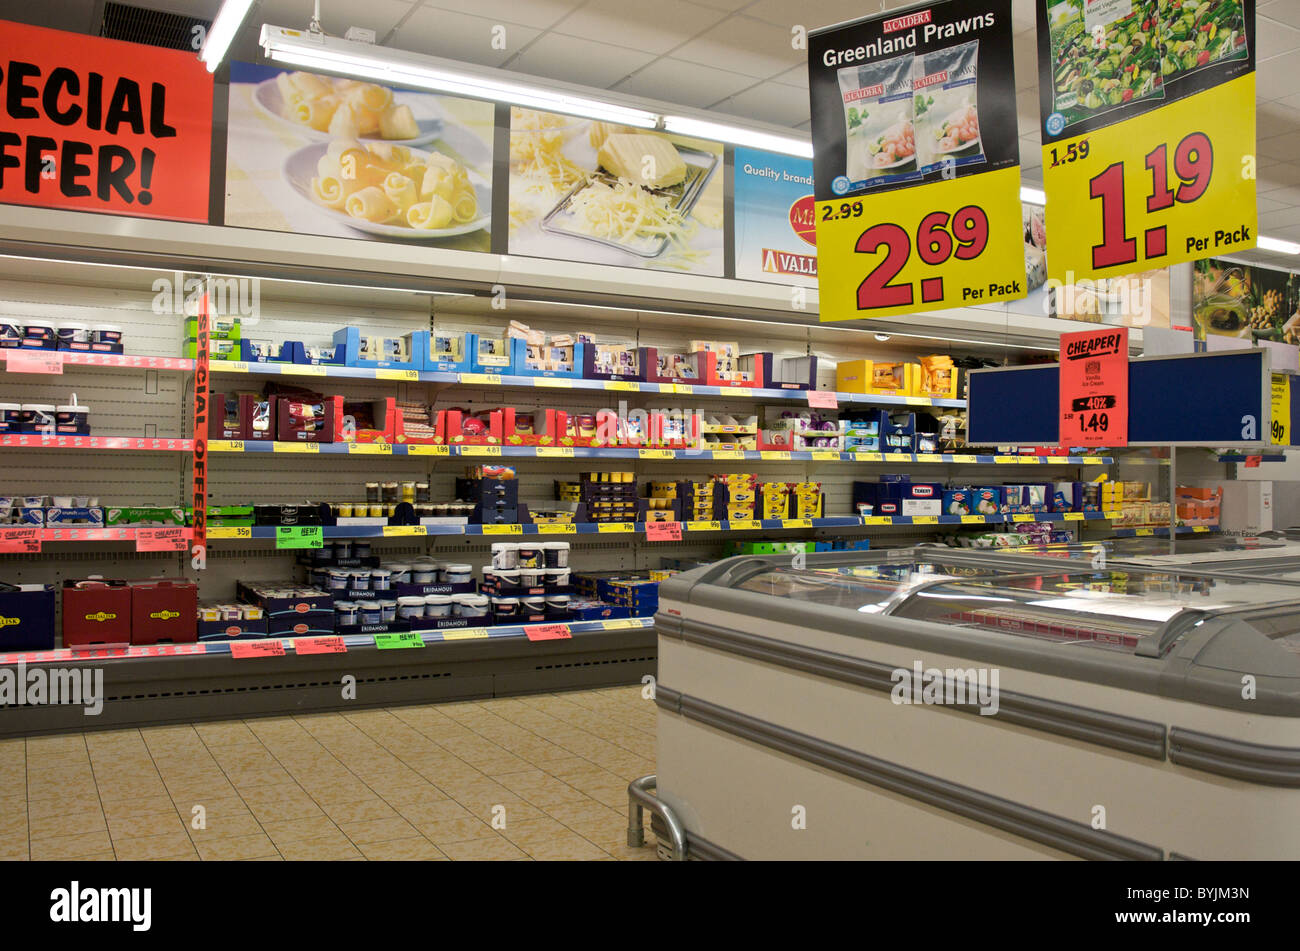 Interior of large store showing the wide range of merchandise available. This is an interior of Lidl's. - Stock Image